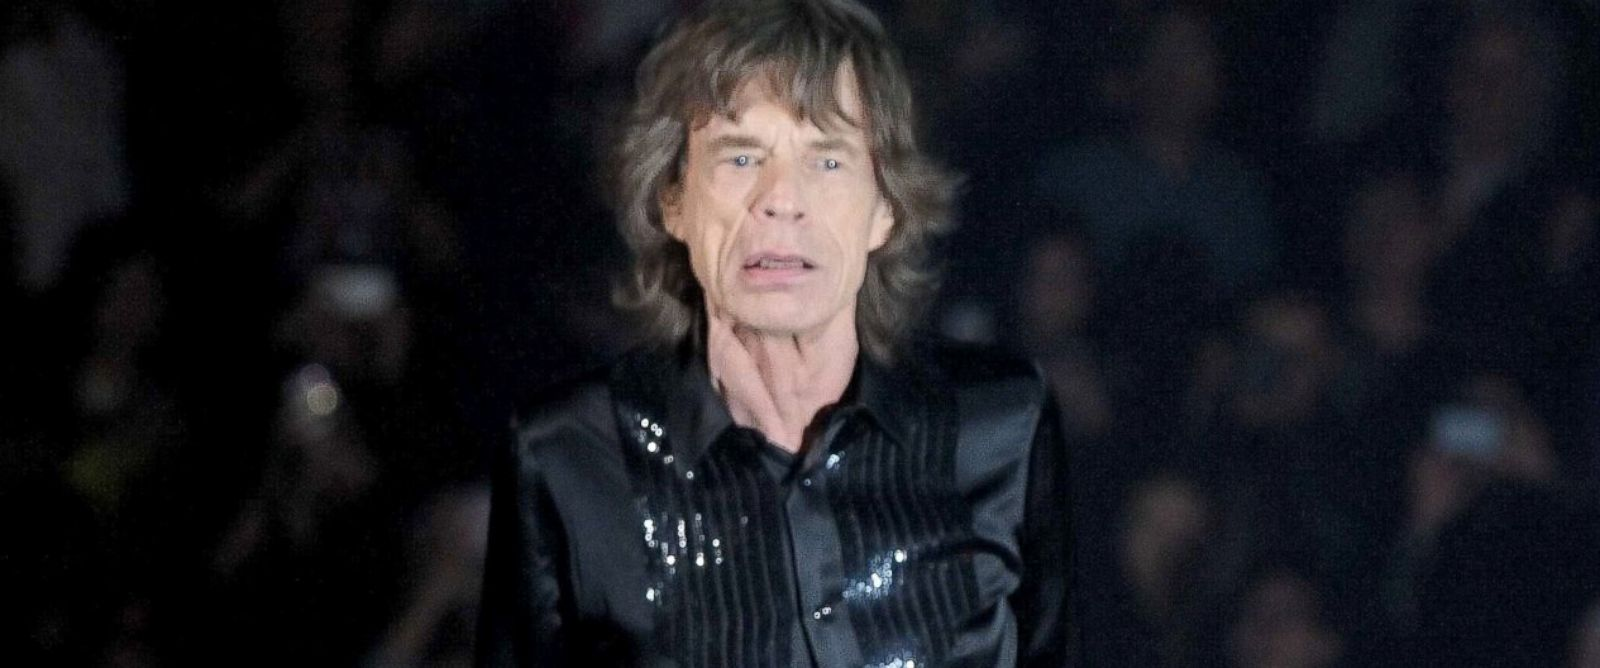 PHOTO: Mick Jagger performs on the stage in concert at the Mercedes-Benz Arena, March 12, 2014, in Shanghai.